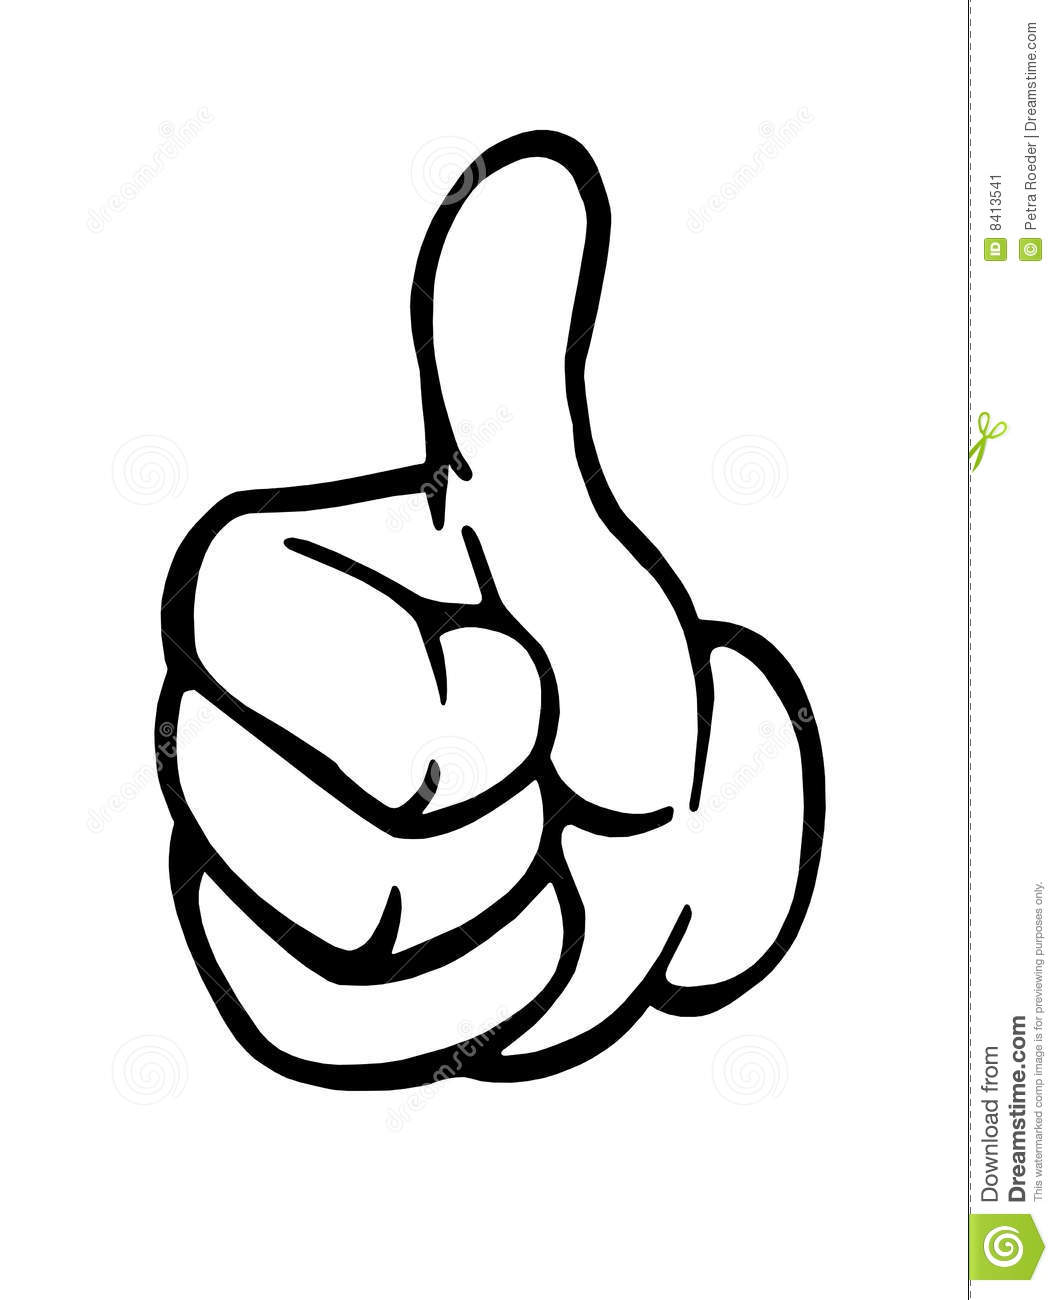 Thumbs Up Sign Stock Image